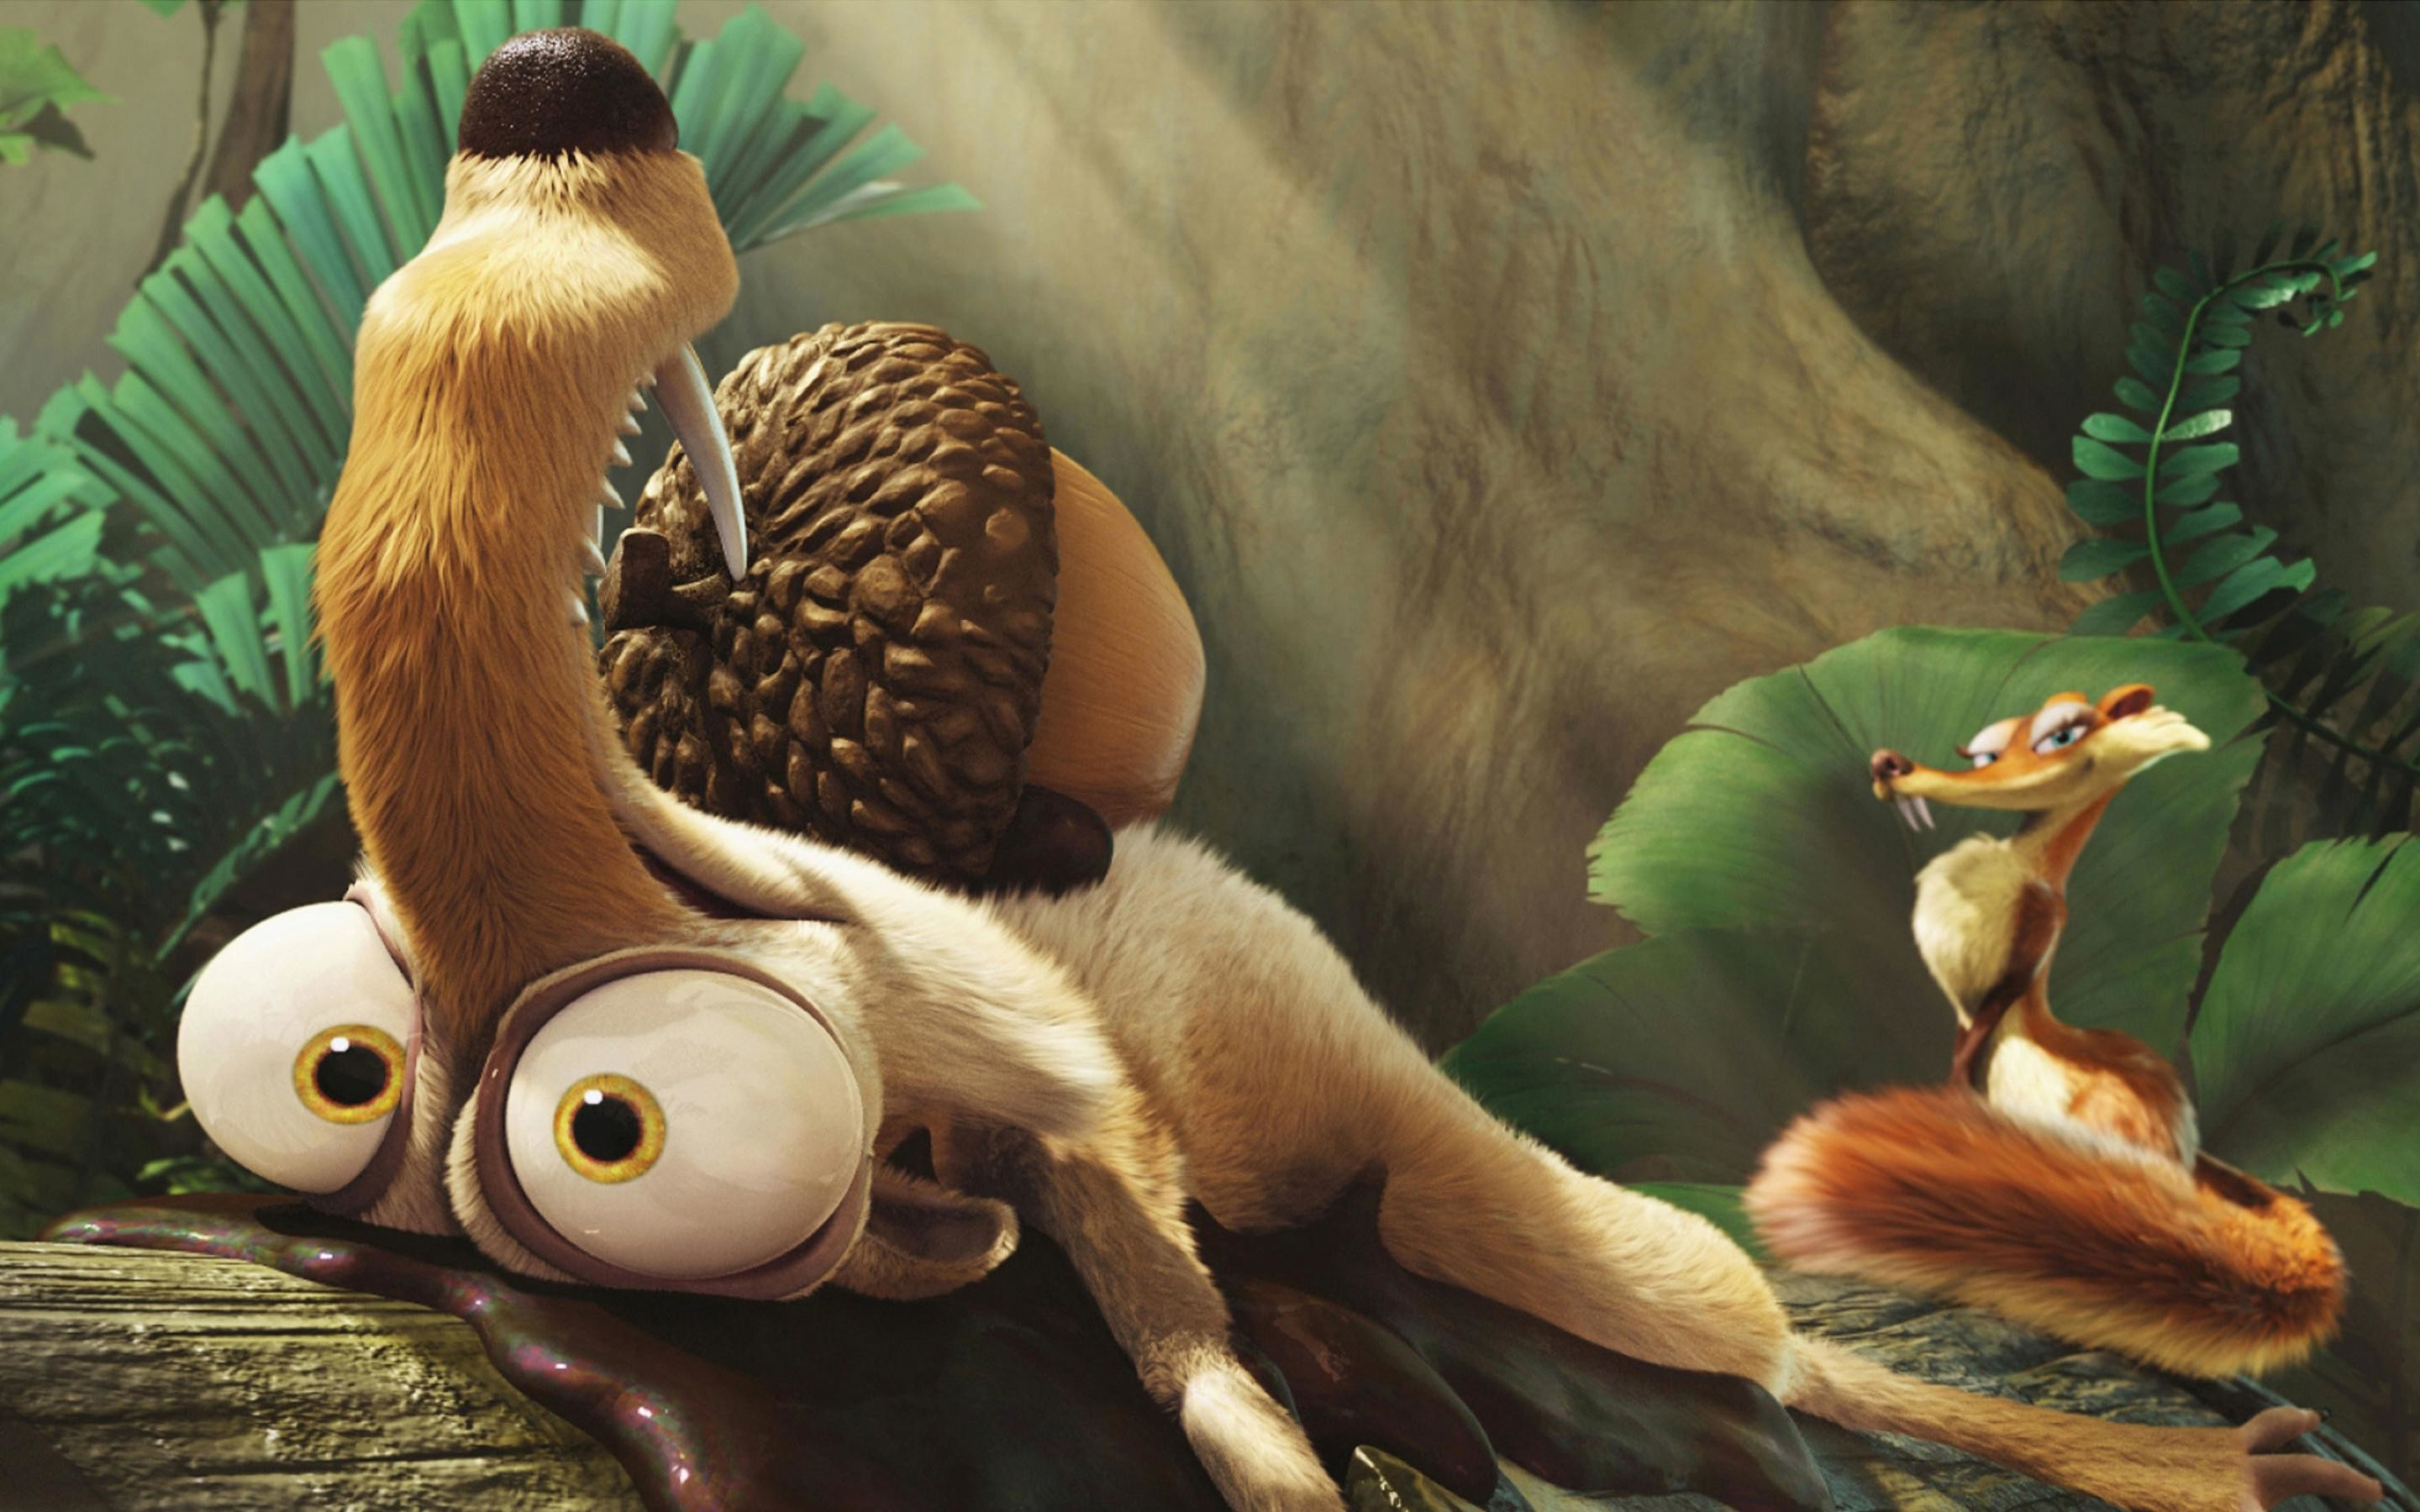 2880x1800 Ice Age: Dawn of the Dinosaurs, cartoon, gray, ice age, squirrel